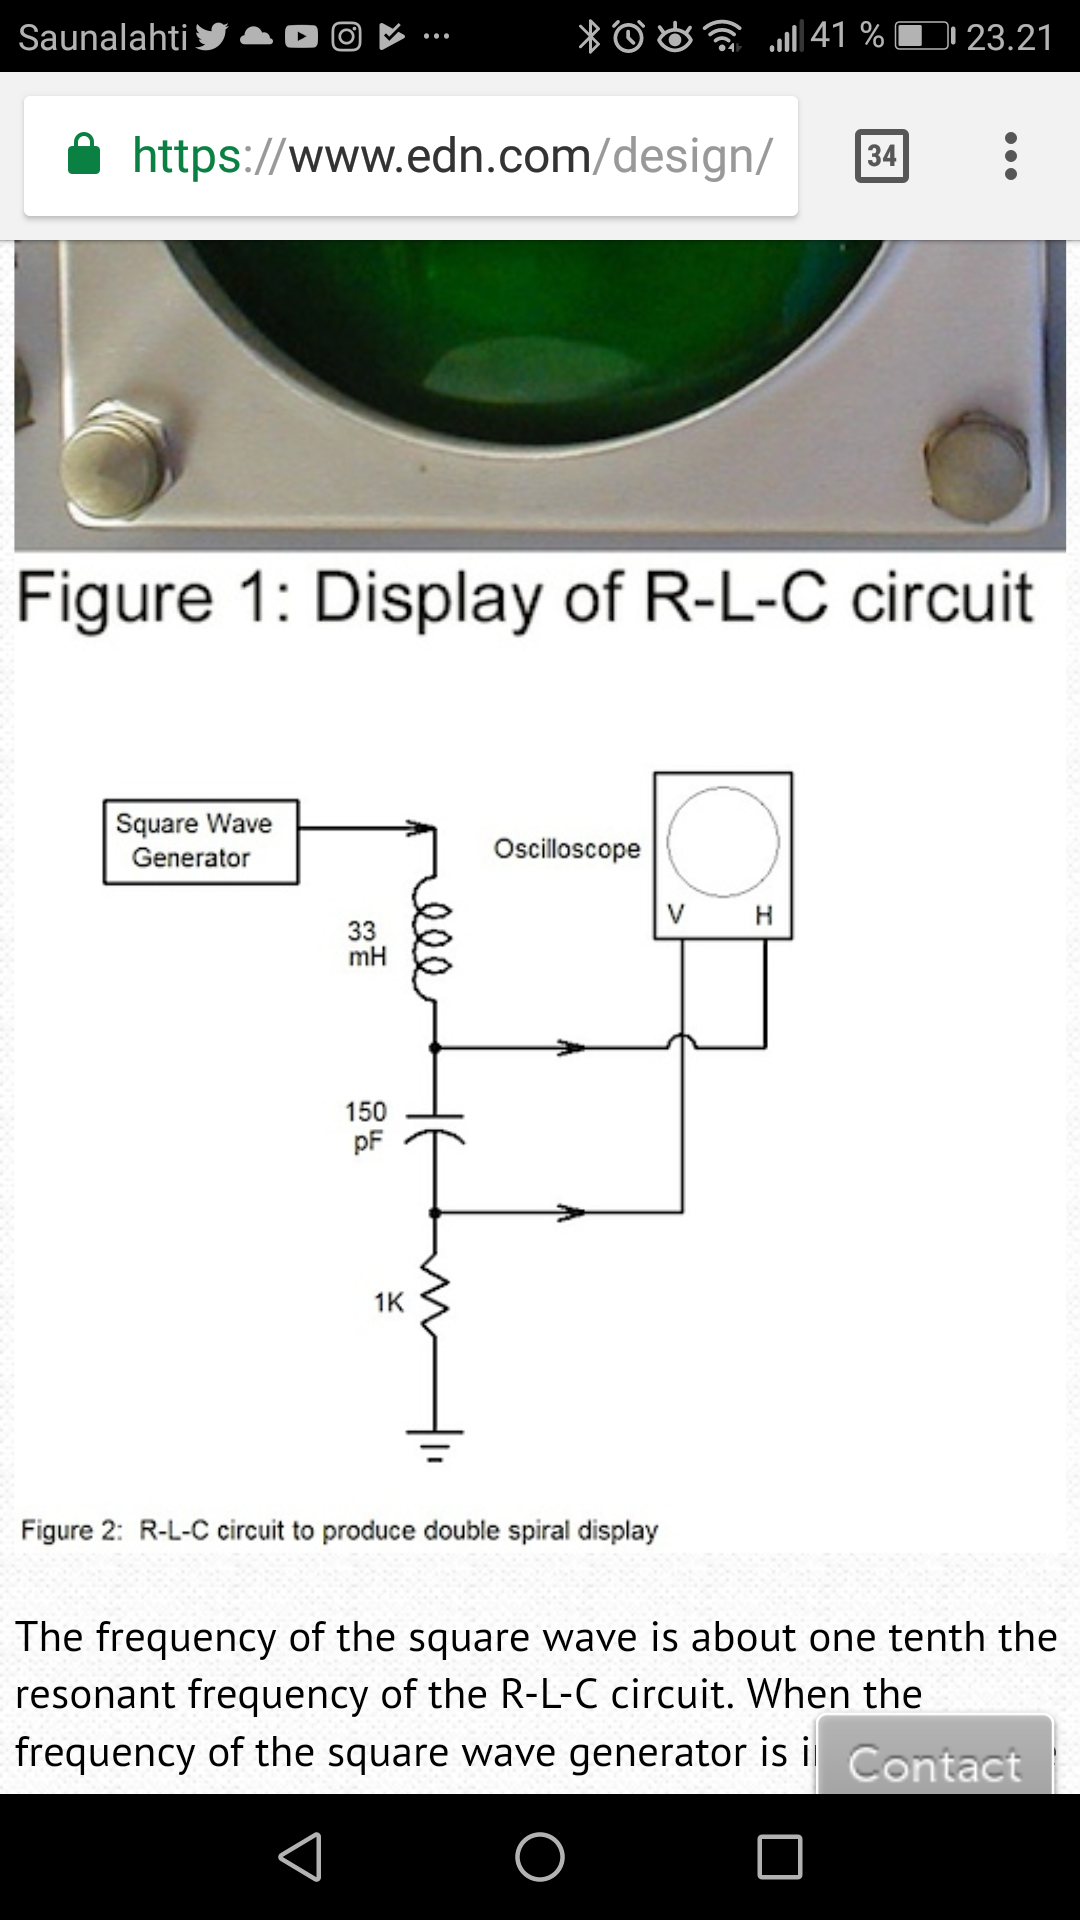 Simple Circuits Enable Oscilloscope Art Recording Playback Circuit Pic16f876a Electronics Projects I Built The From This Edn Article